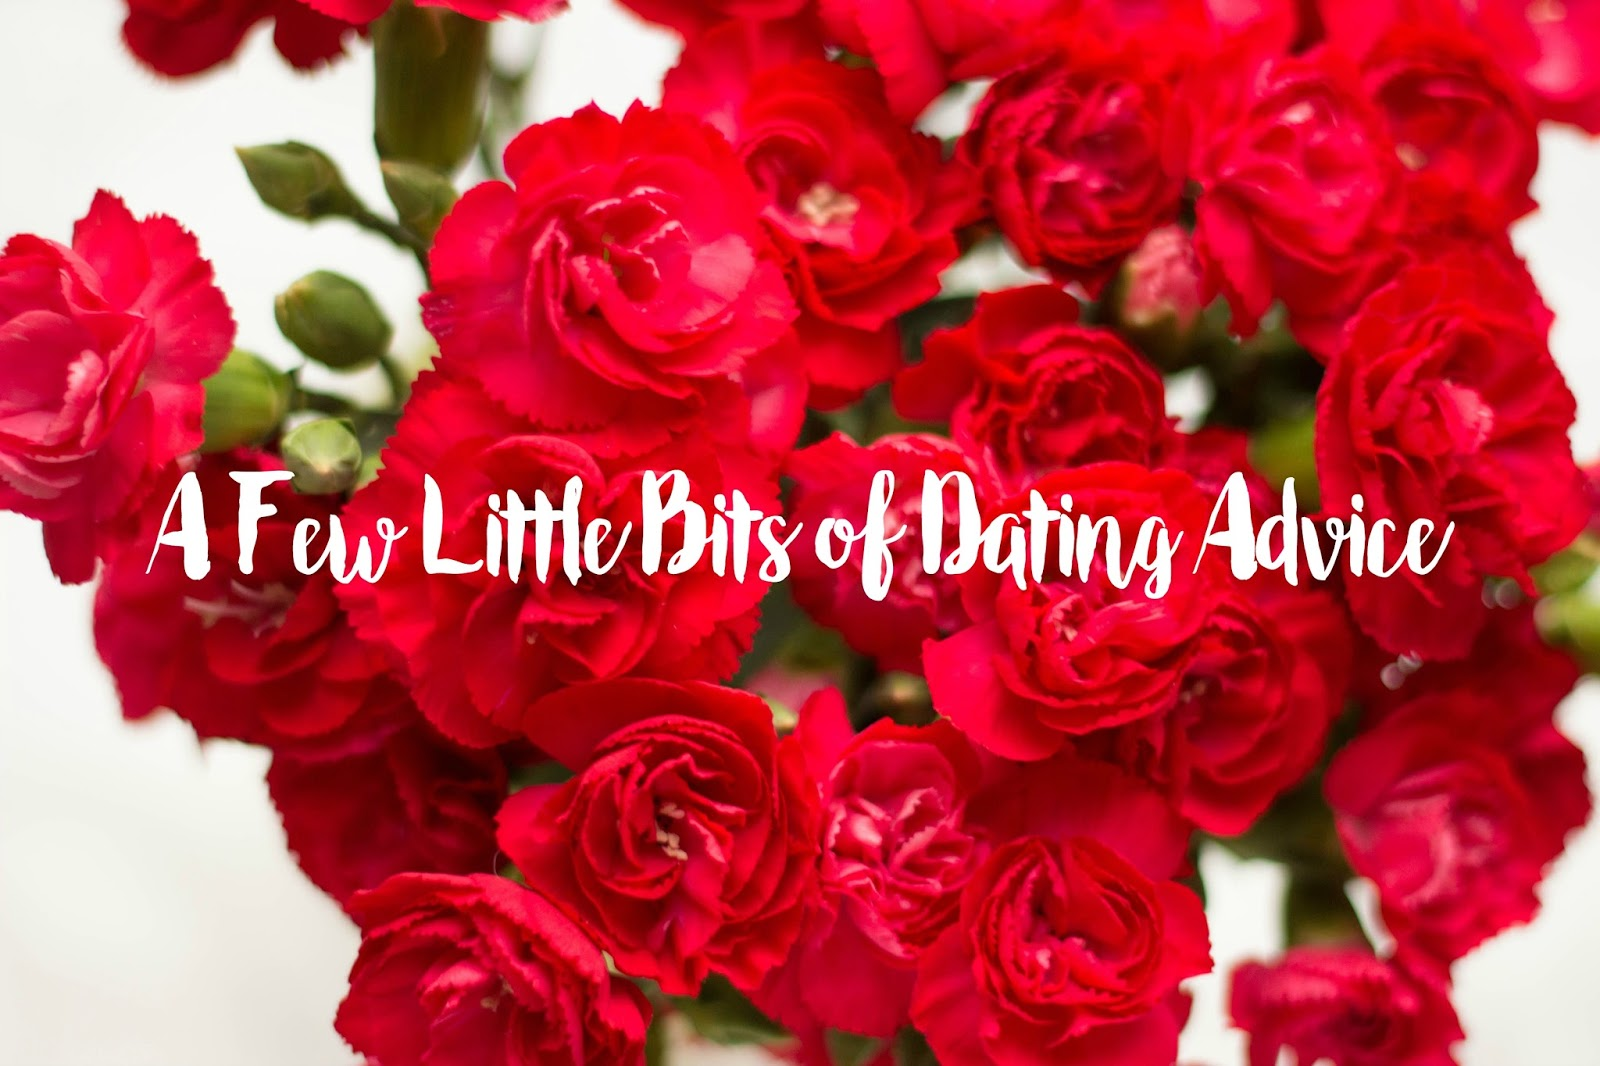 Dating Disasters, Dating Advice, How to act on a date, How not to act on a date, flowers, carnations, Katie Writes, Dating Blogs, Love Bloggers,